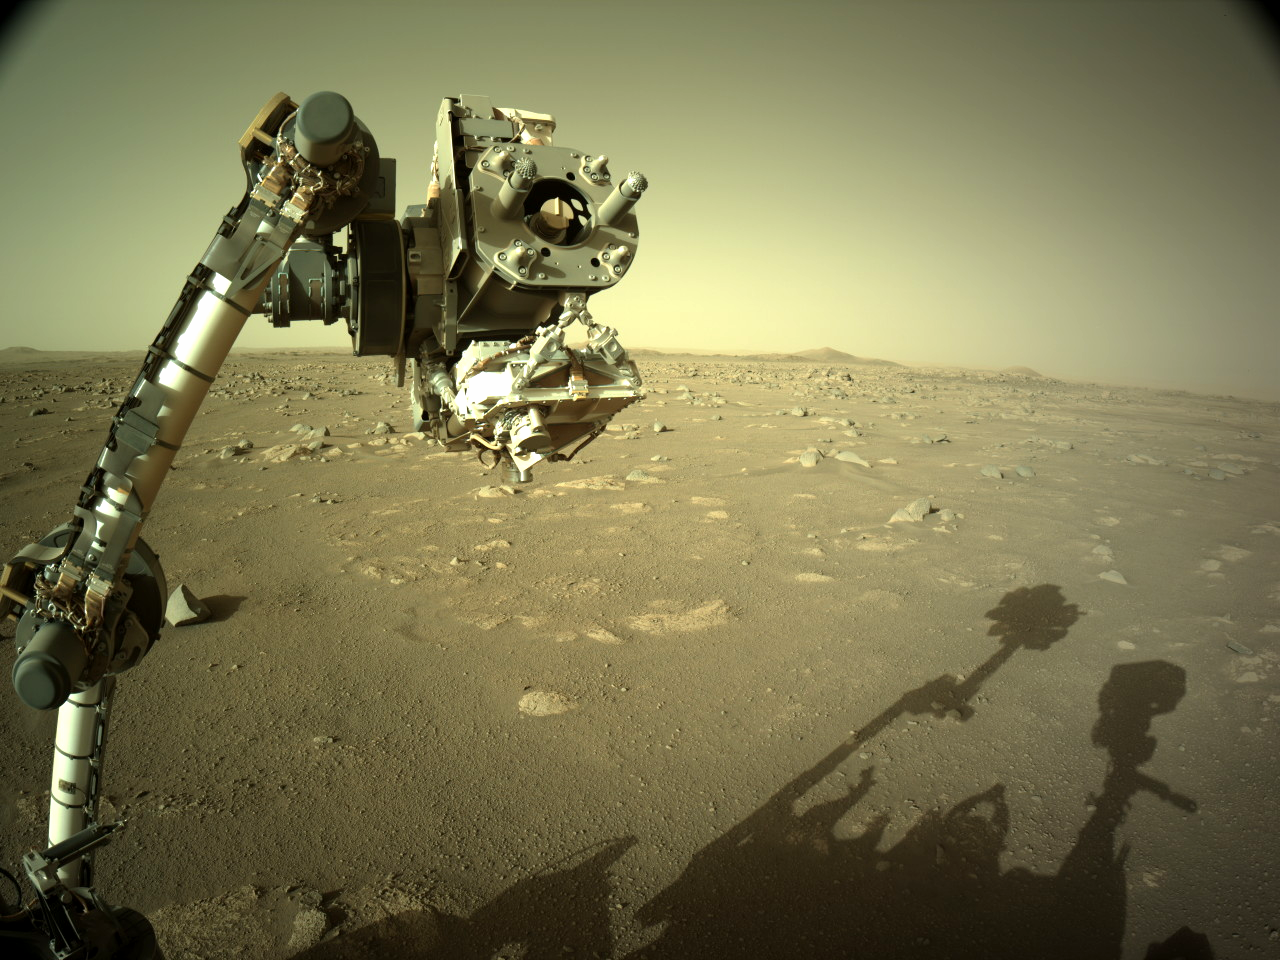 Remote Arm with SHERLOC on Mars